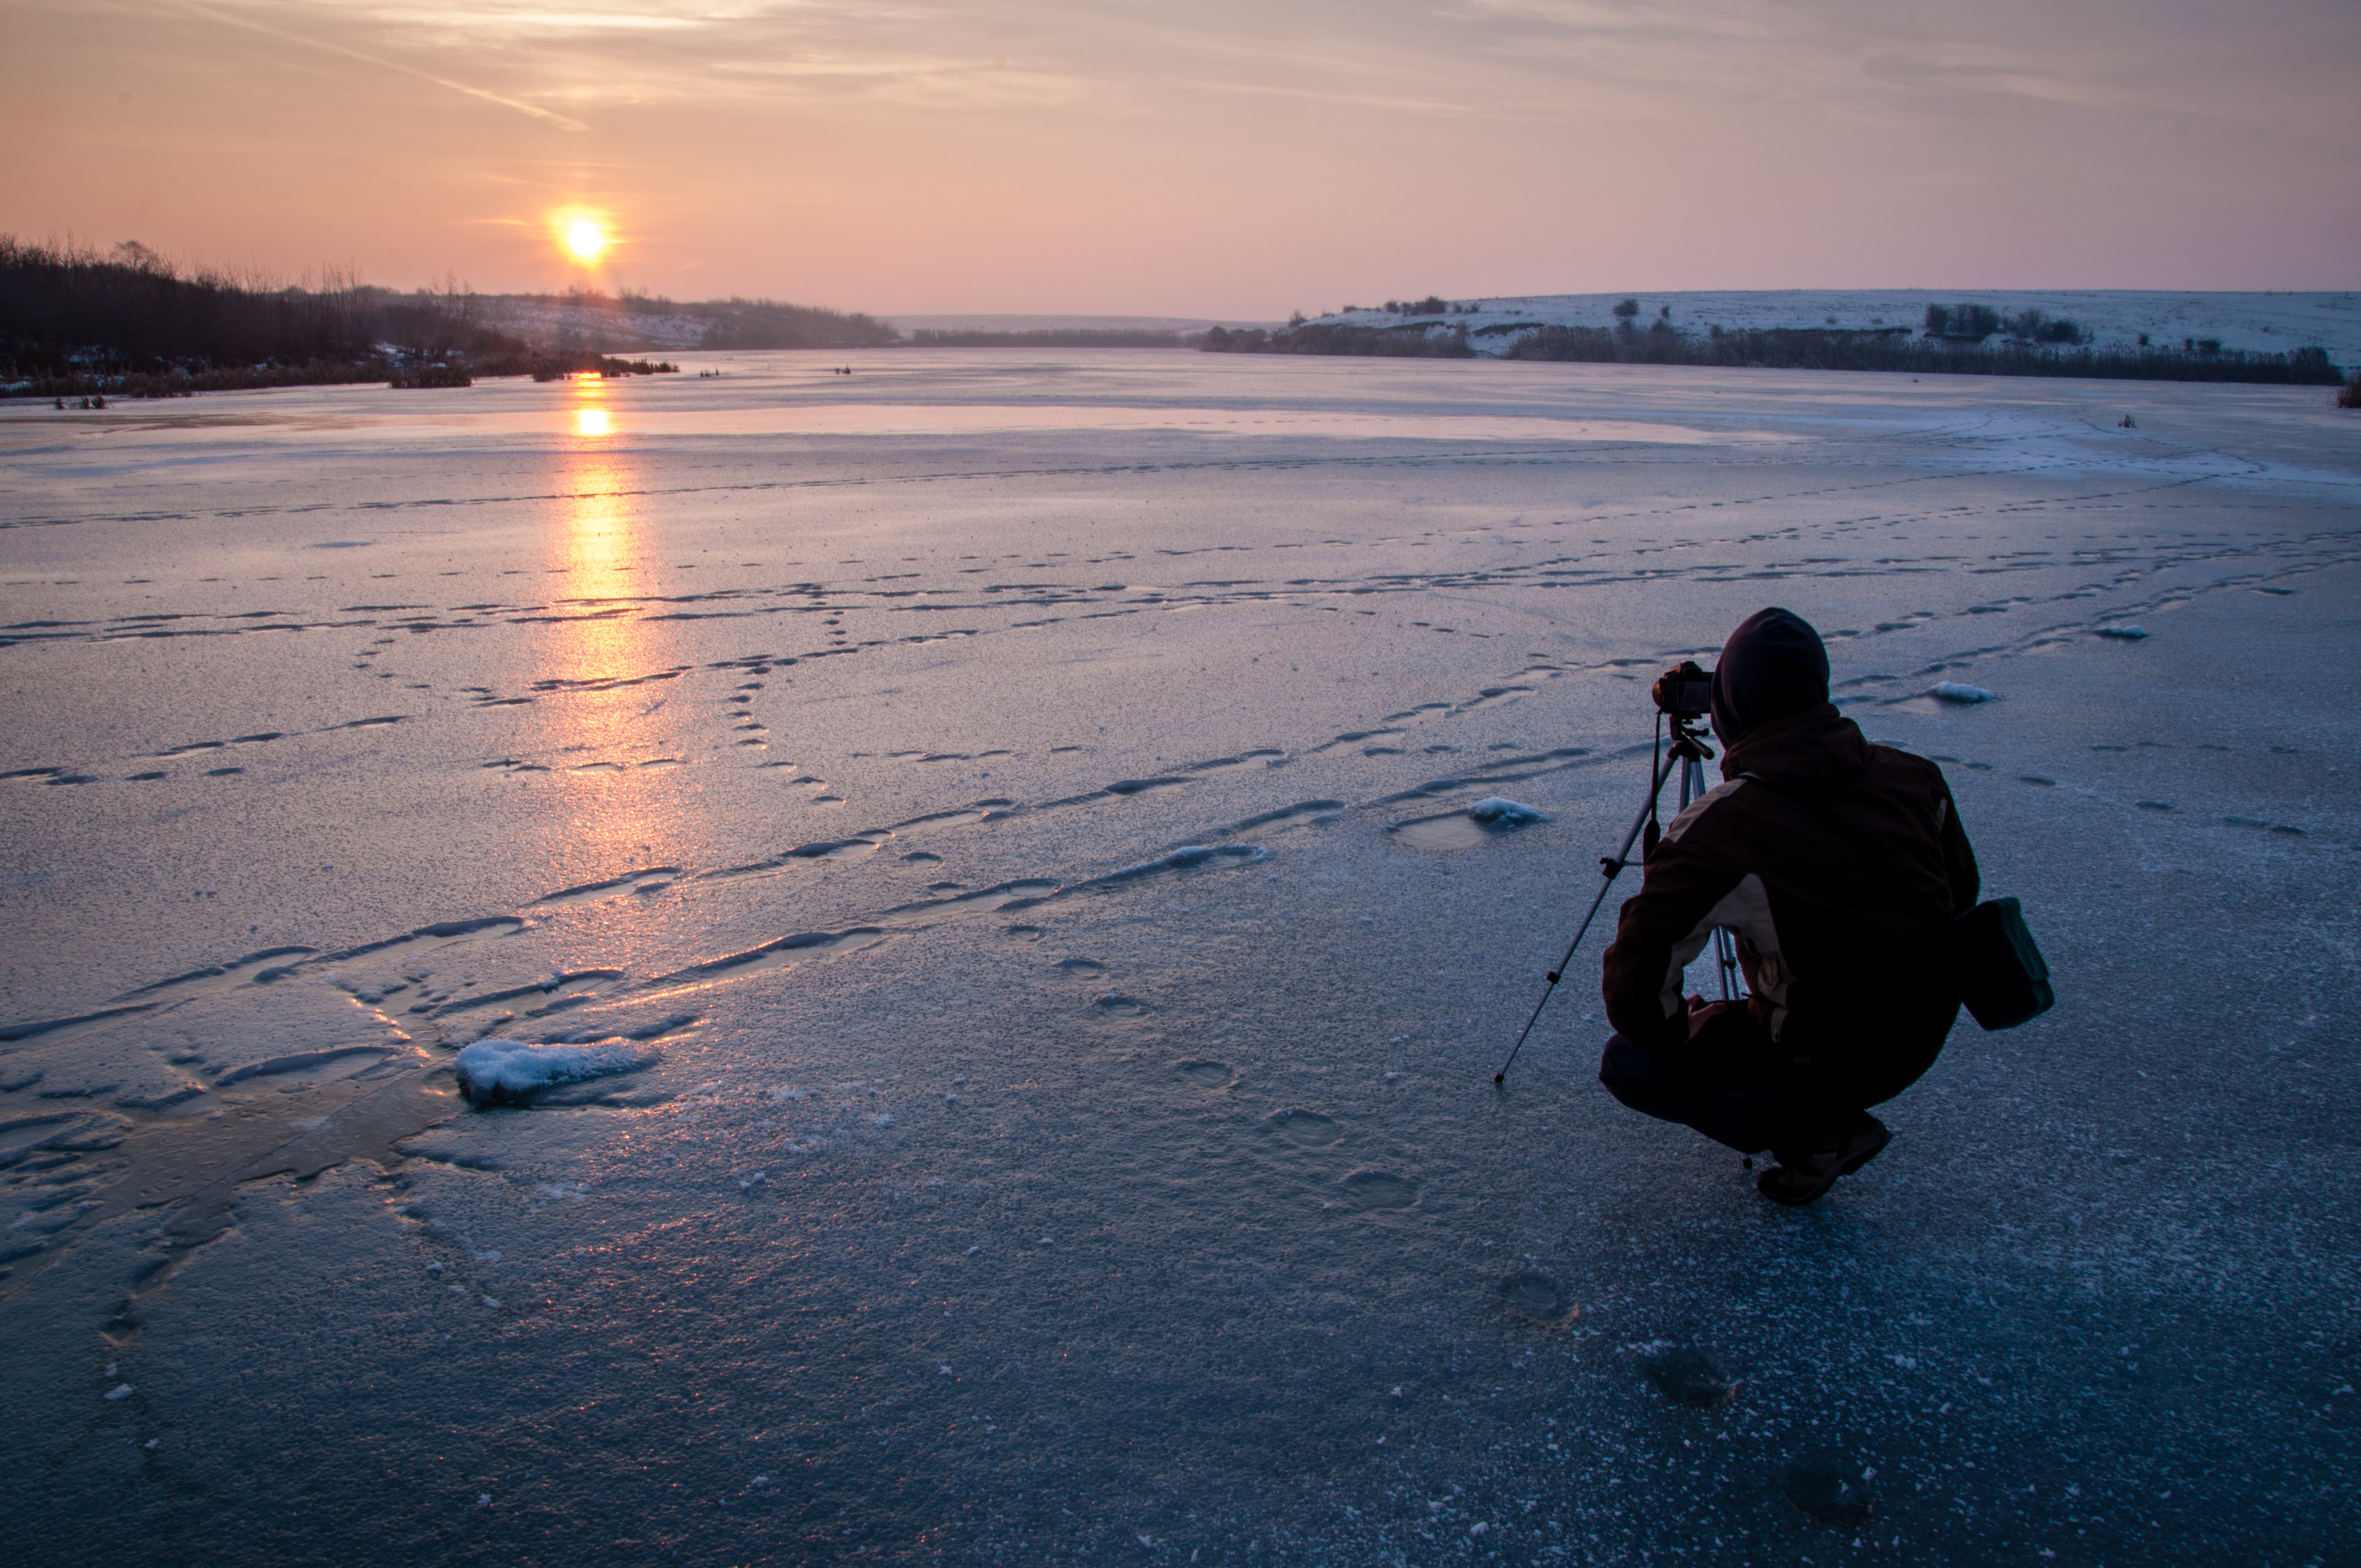 Cash from your camera: How to make money from photography